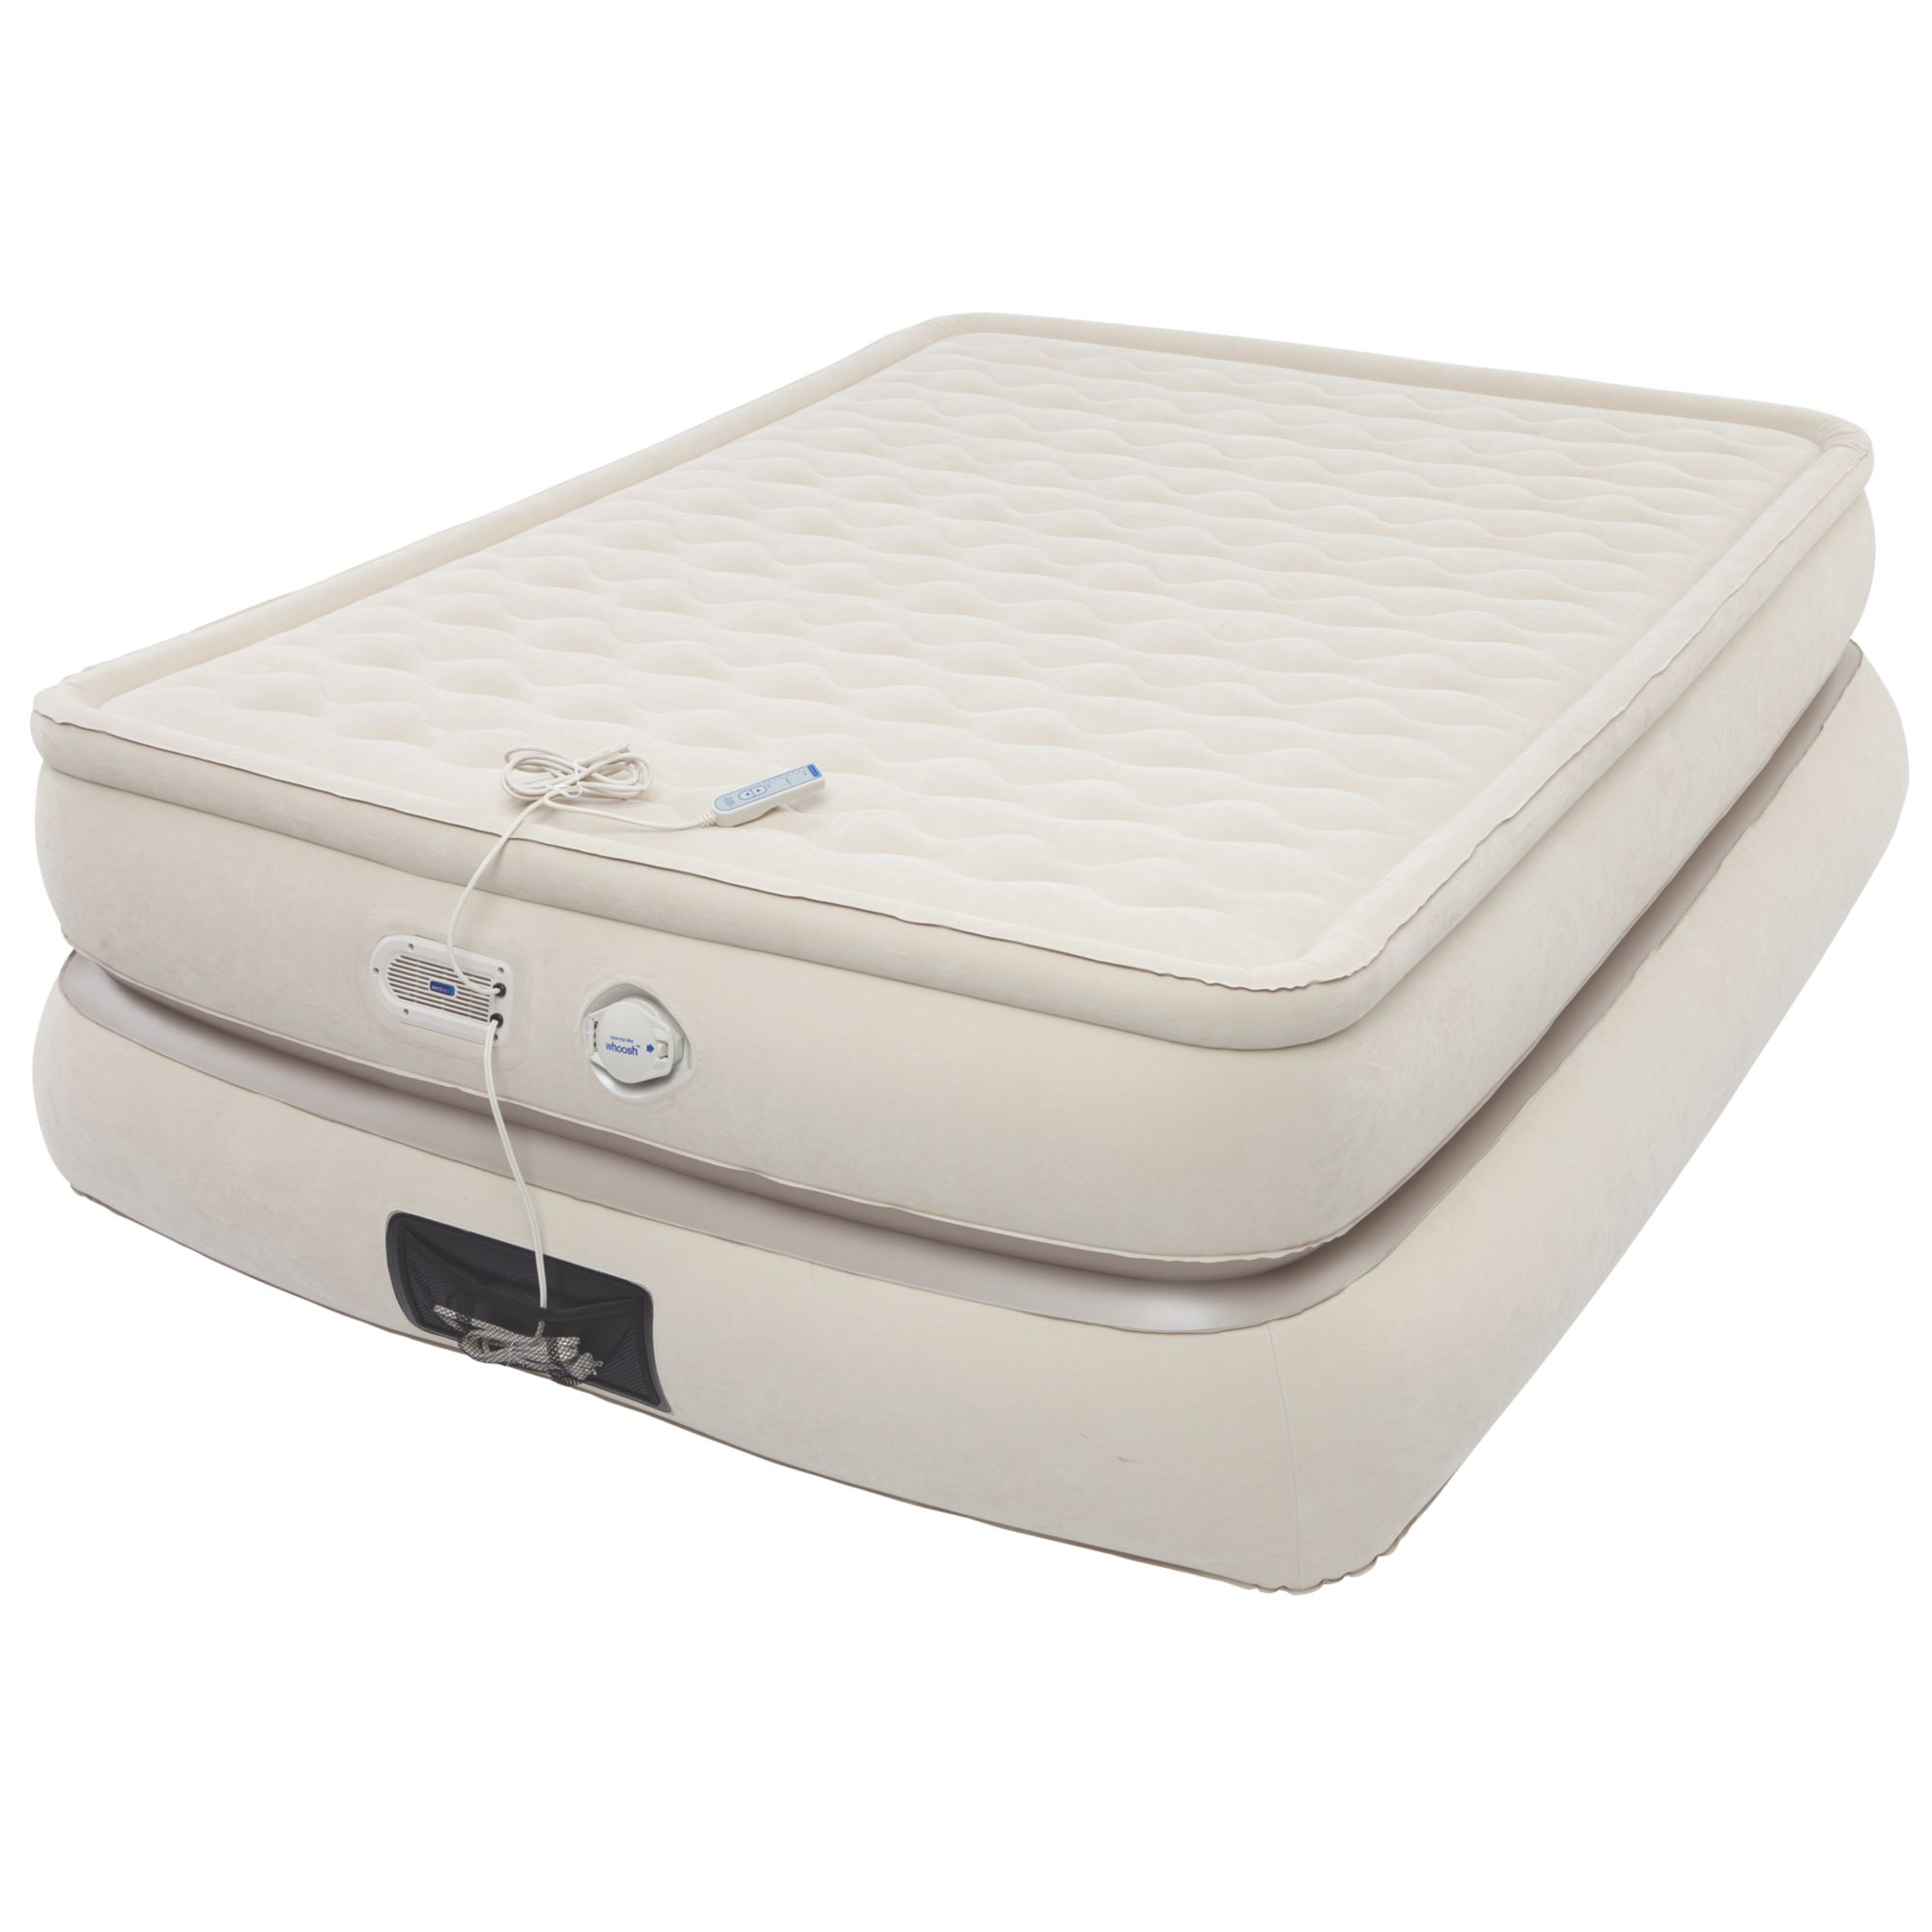 air full itm deluxe durabeam bed pump rest w mattress resource pillow inflatable intex